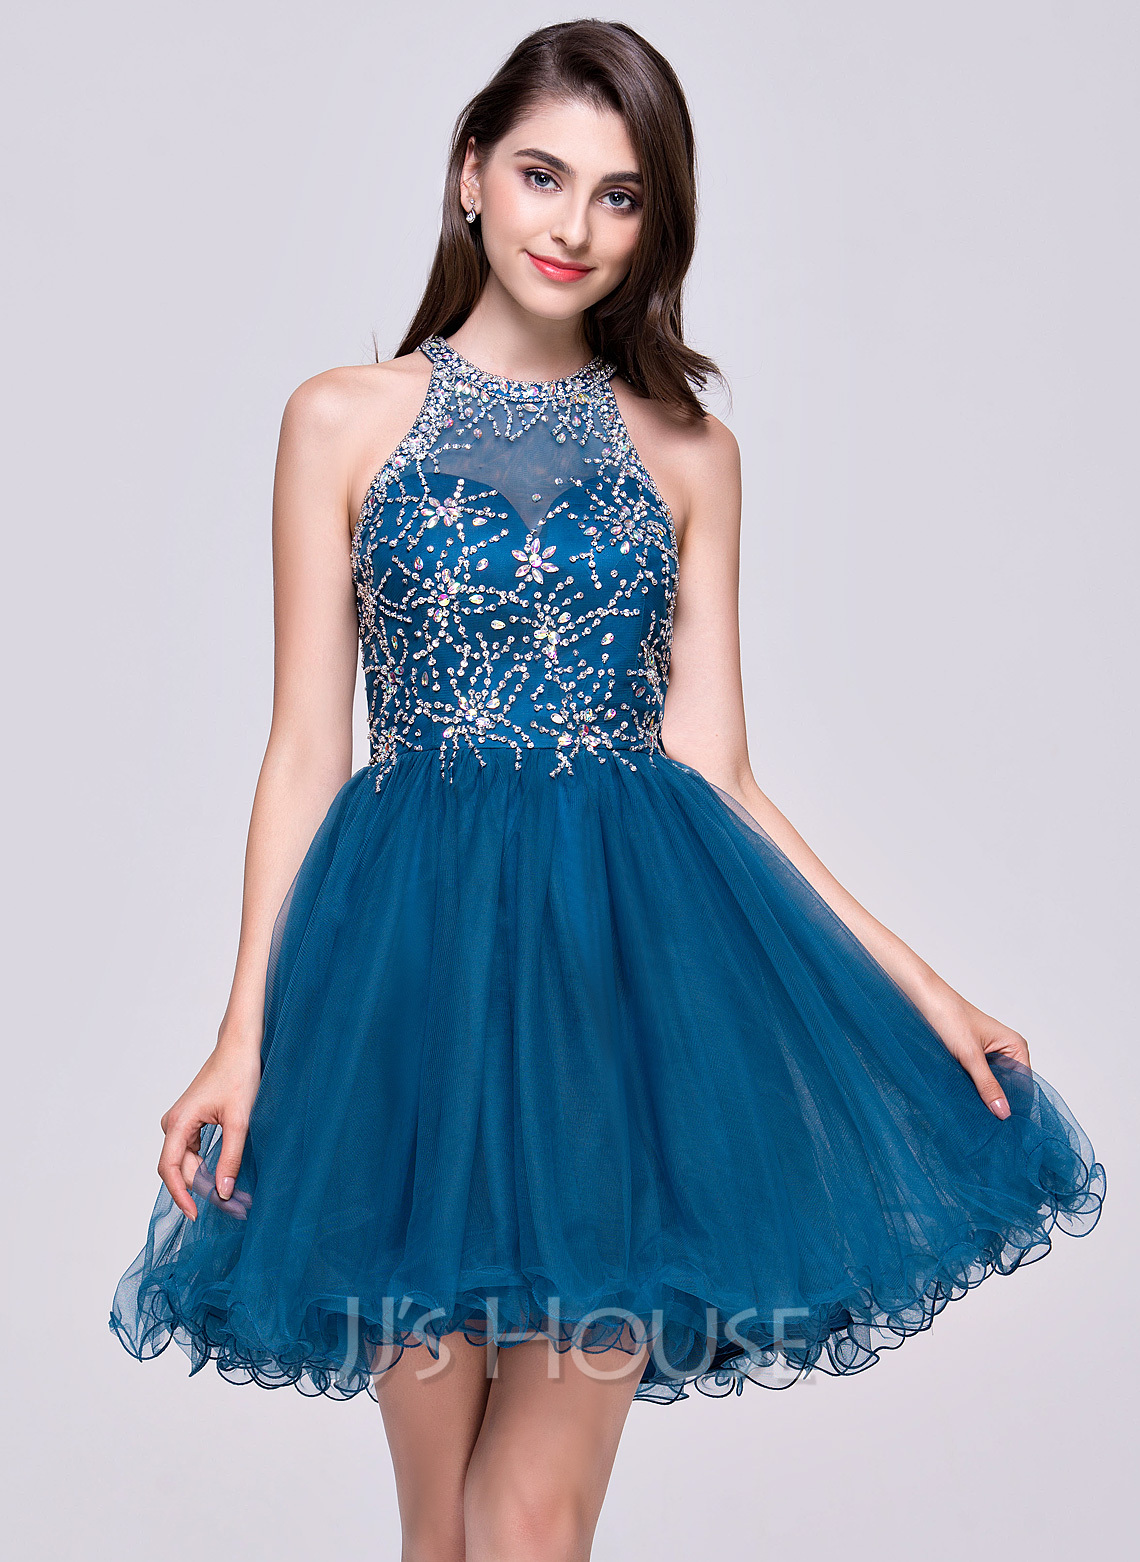 A-Line/Princess Scoop Neck Short/Mini Tulle Homecoming Dress With Beading Sequins